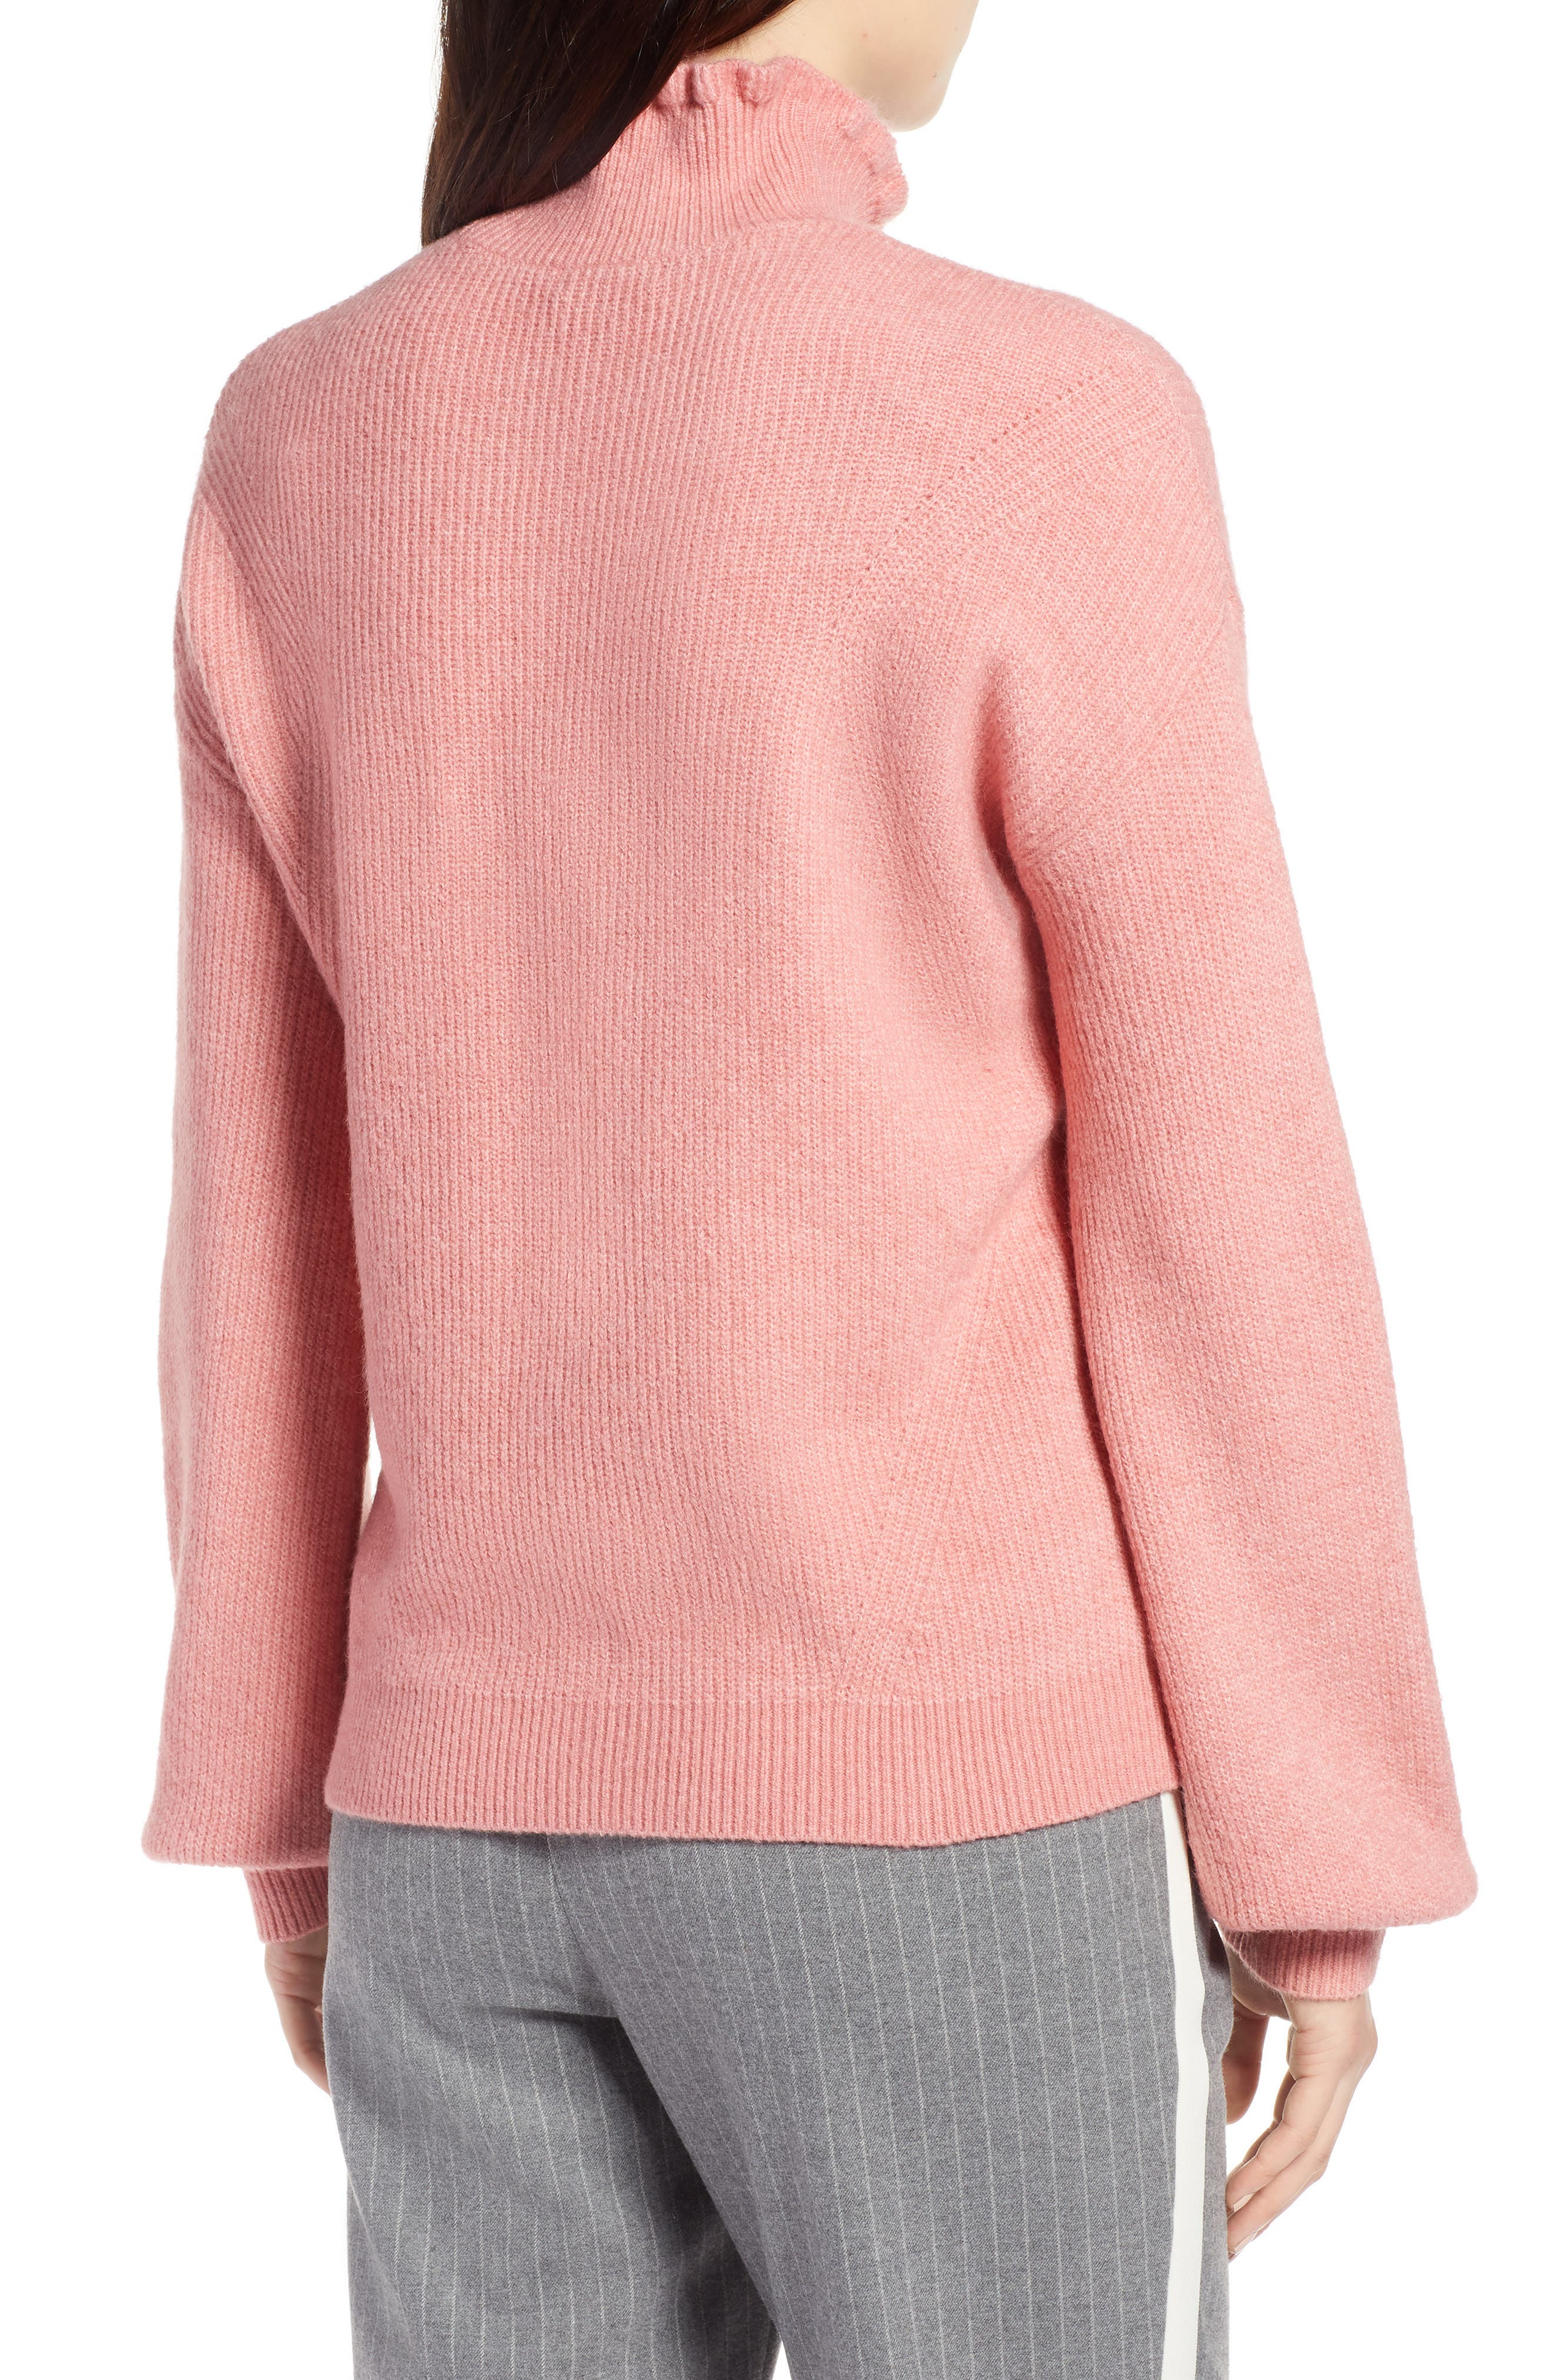 Ruffle Neck Sweater,                             Alternate thumbnail 2, color,                             Pink Apricot